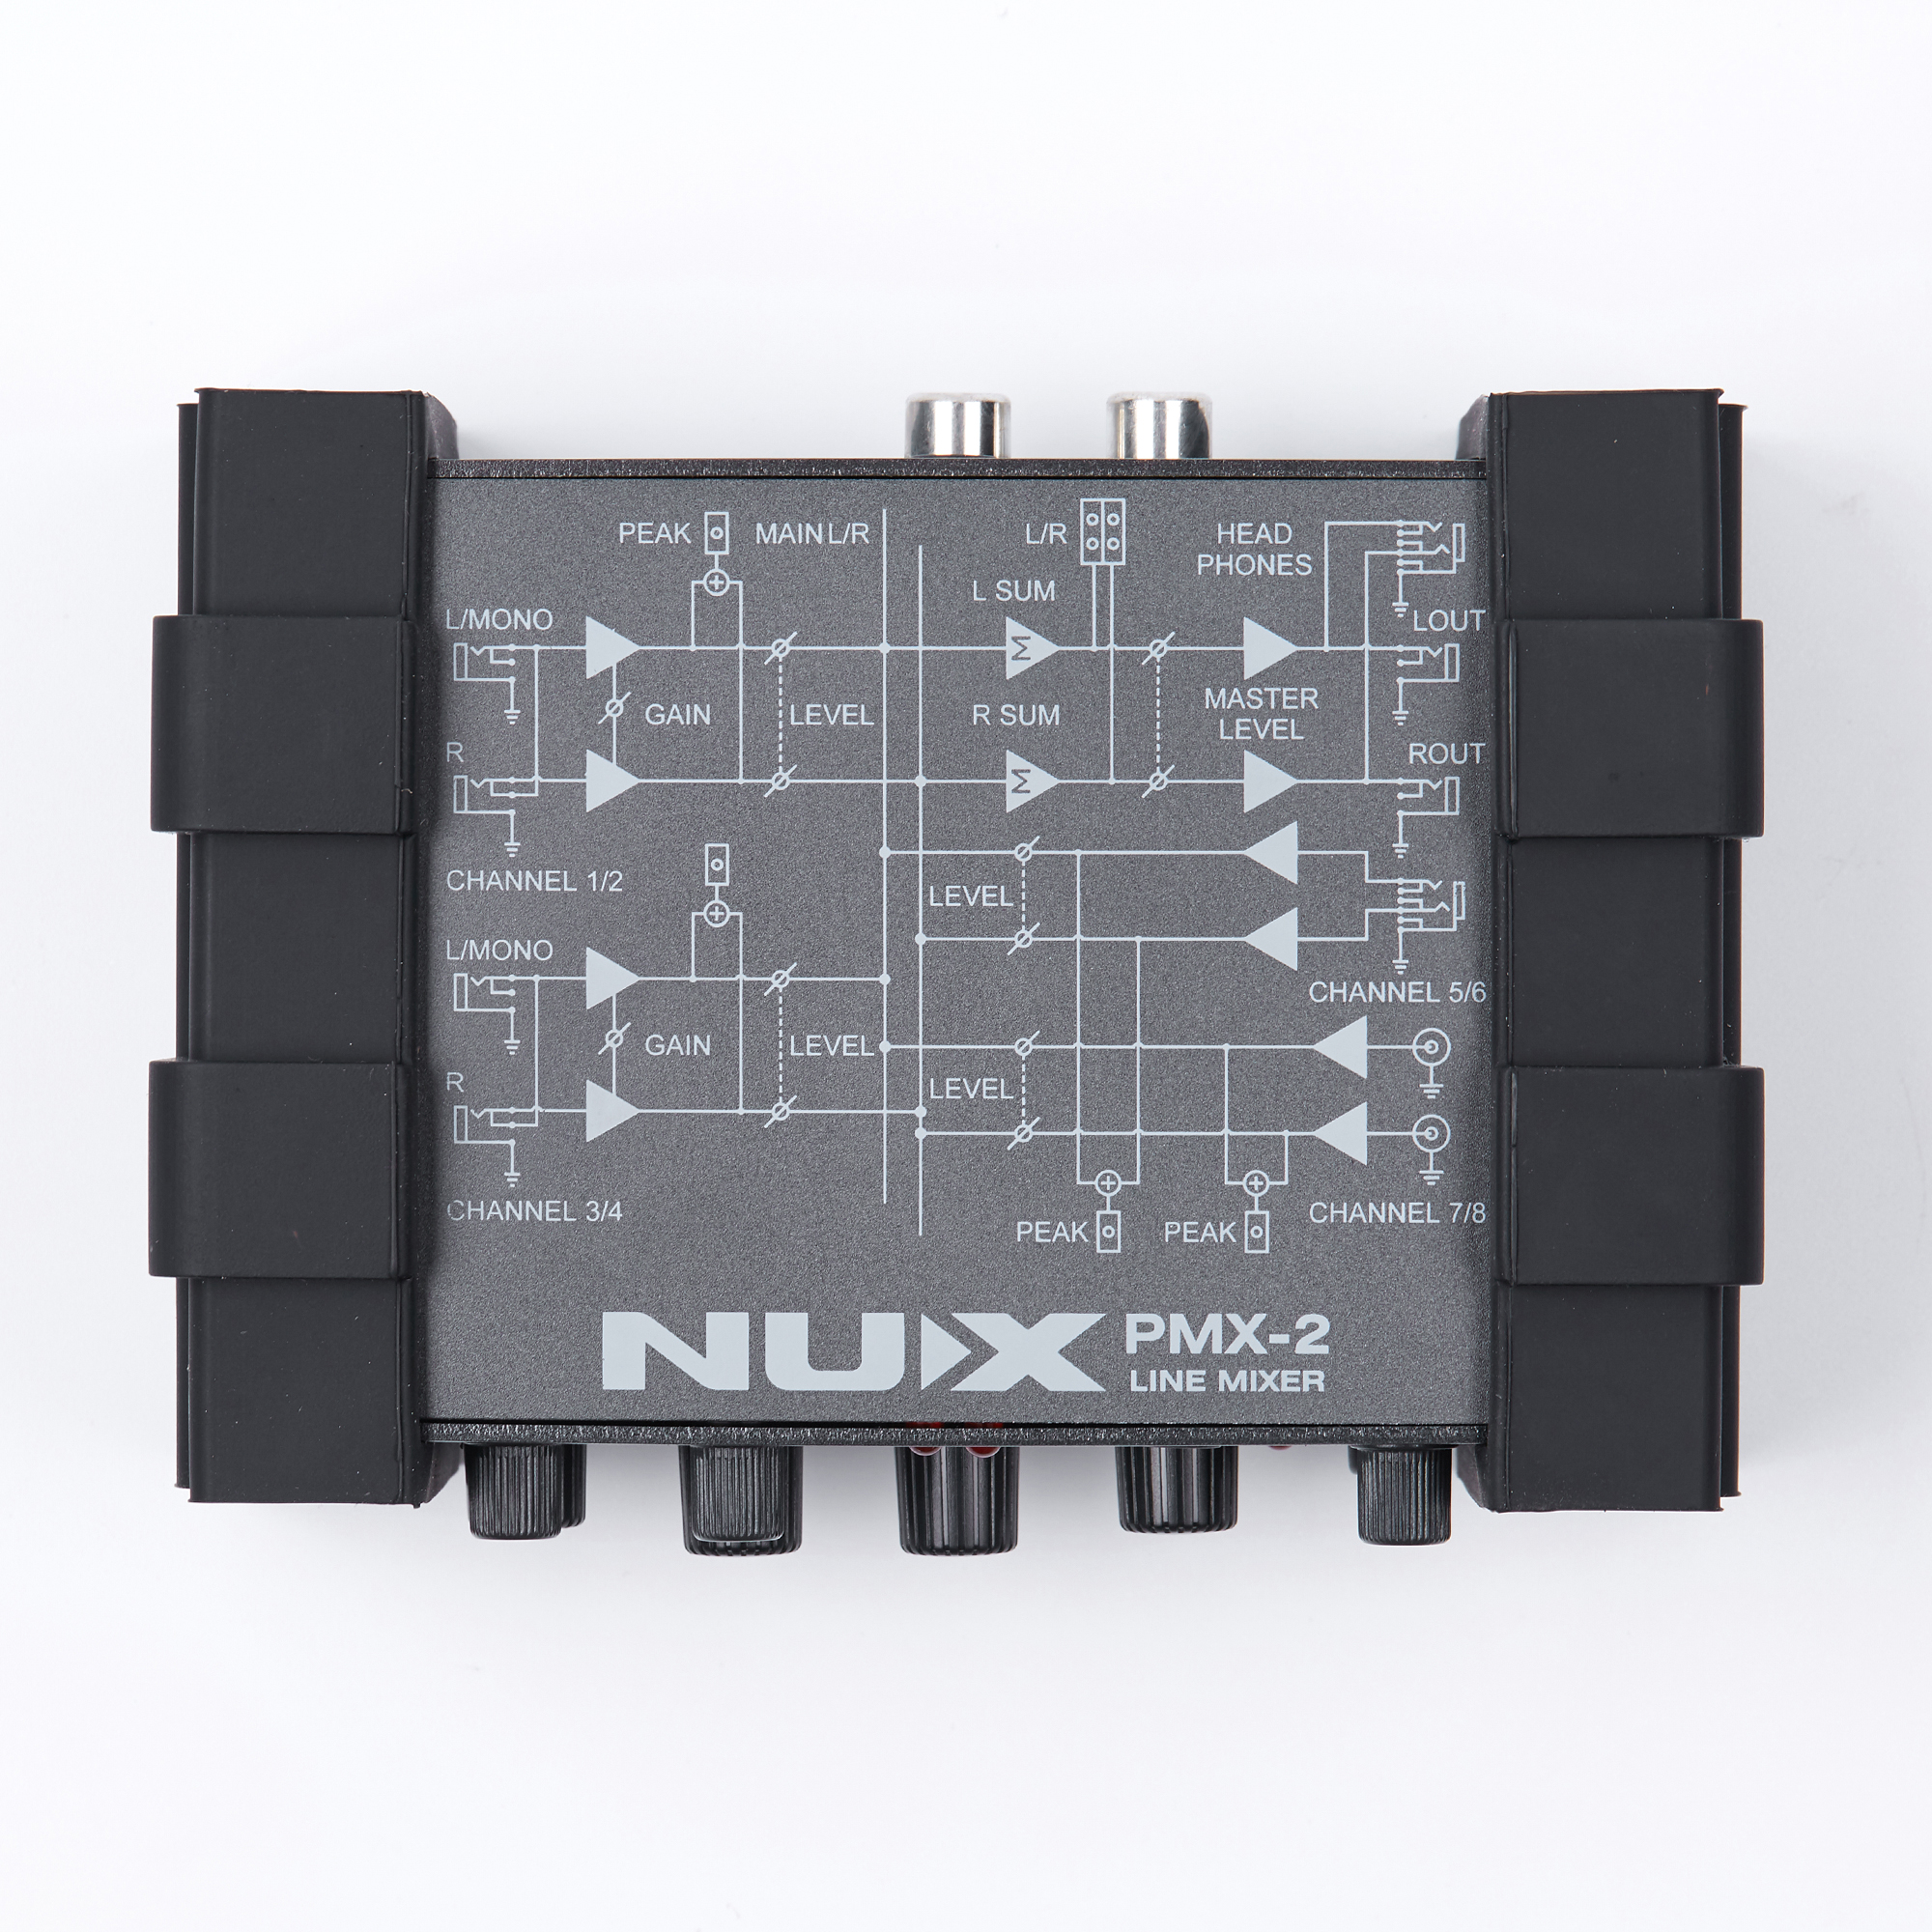 Gain Control 8 Inputs and 2 Outputs NUX PMX-2 Multi-Channel Mini Mixer 30 Musical Instruments Accessories for Guitar Bass Player 50pcs cd4510be cd4510 dip16